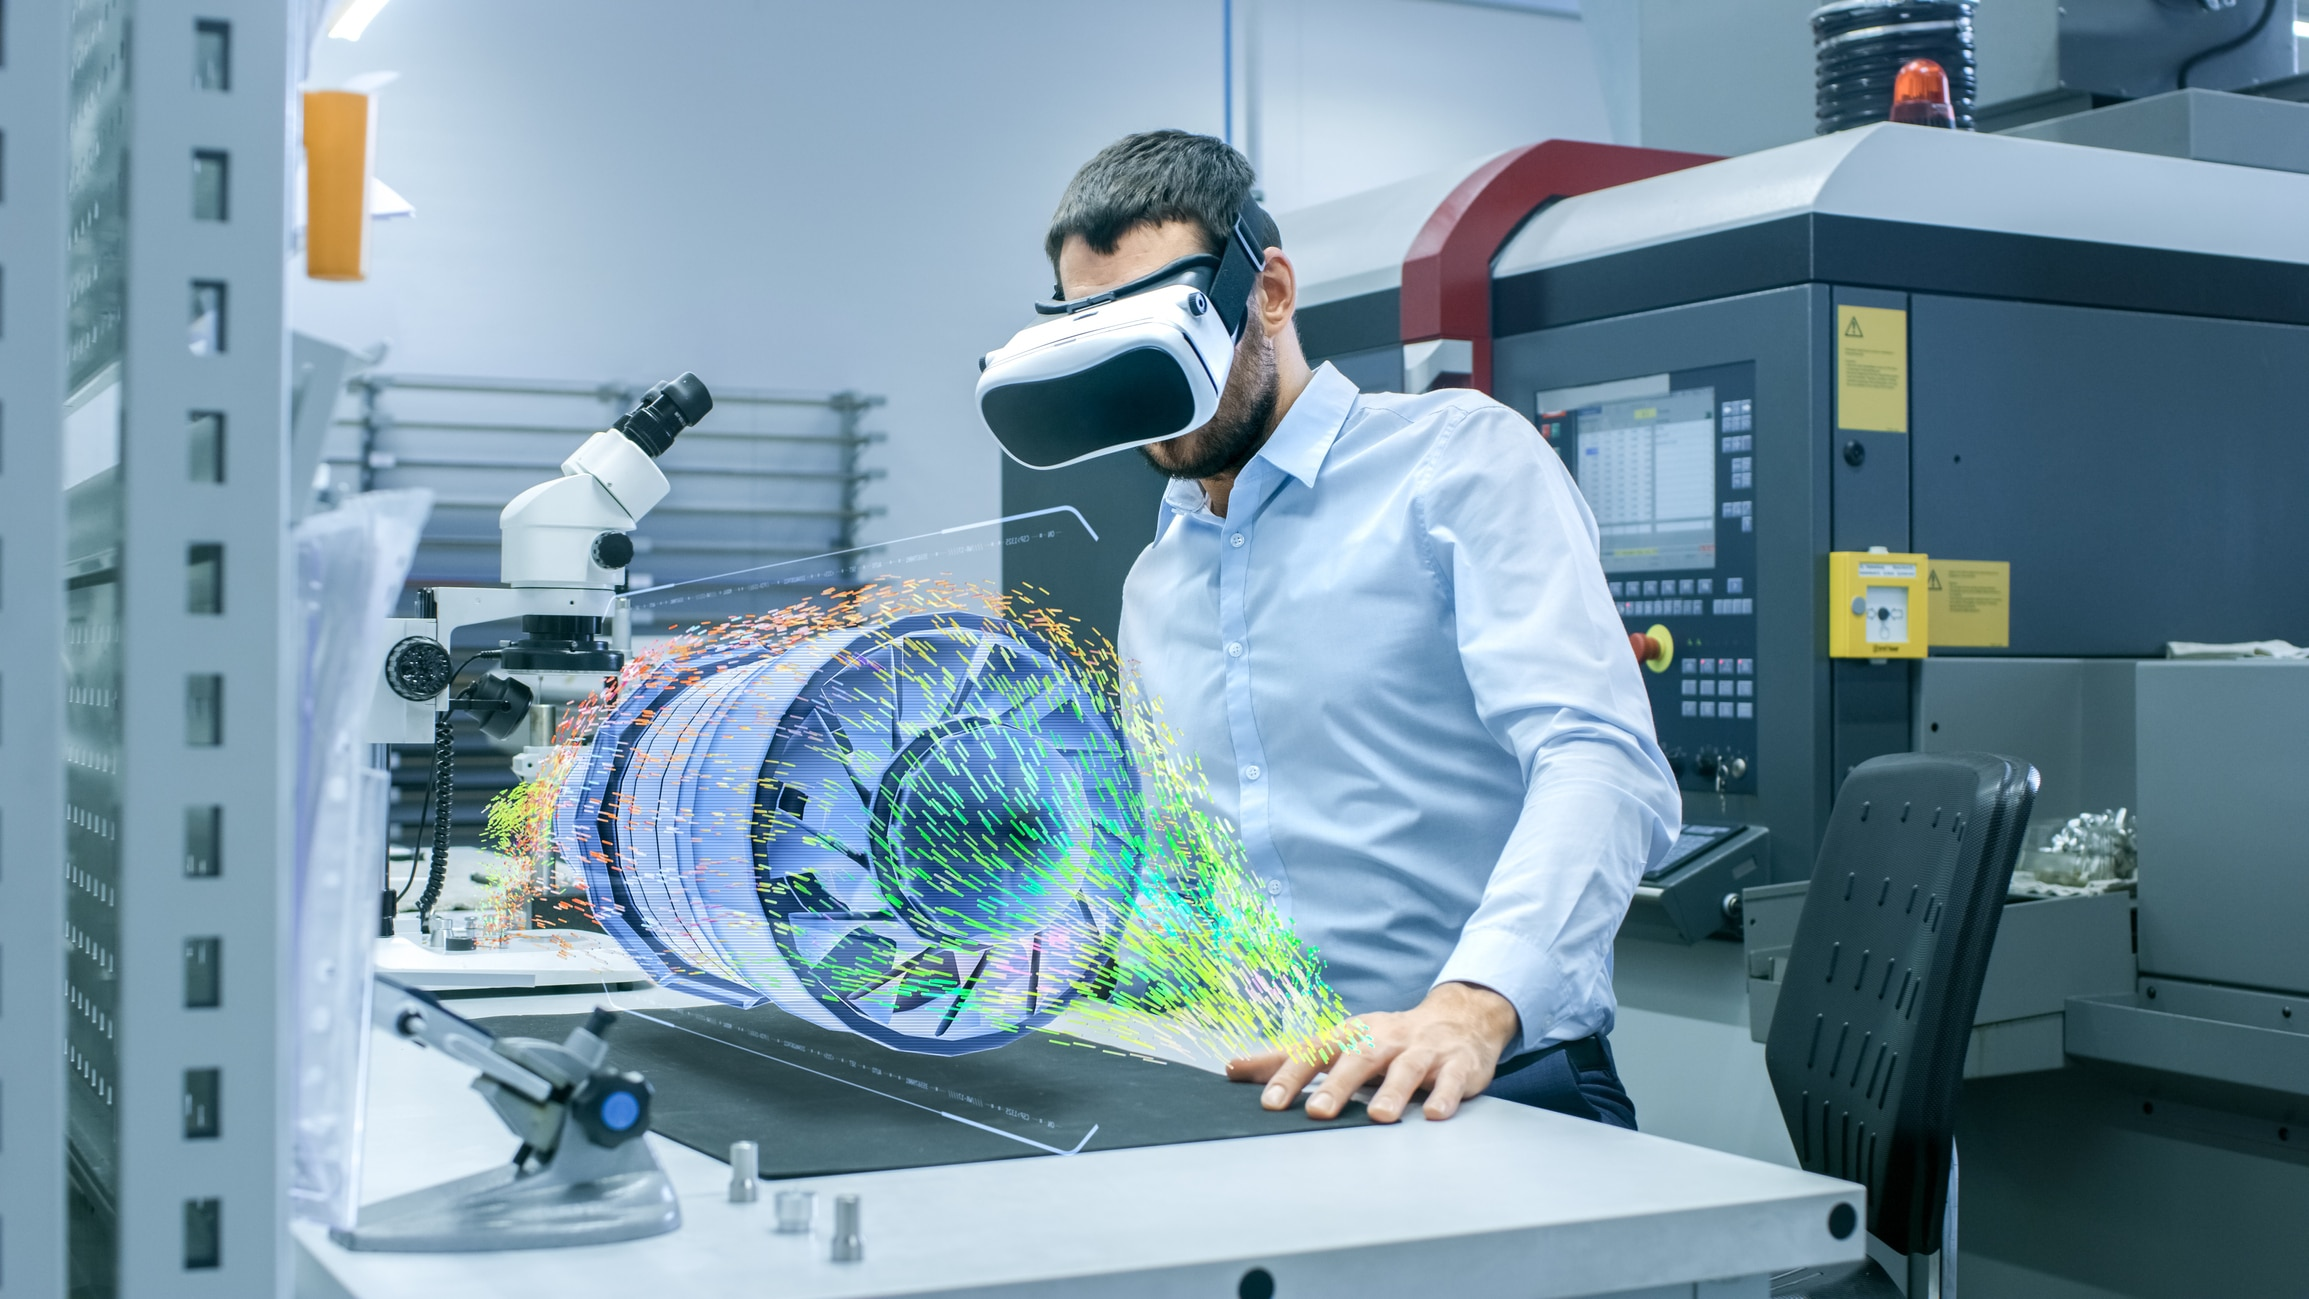 Factory Chief Engineer Wearing VR Headset Designs Engine Turbine on the Holographic Projection Table. Futuristic Design of Virtual Mixed Reality Application. virtual reality for training